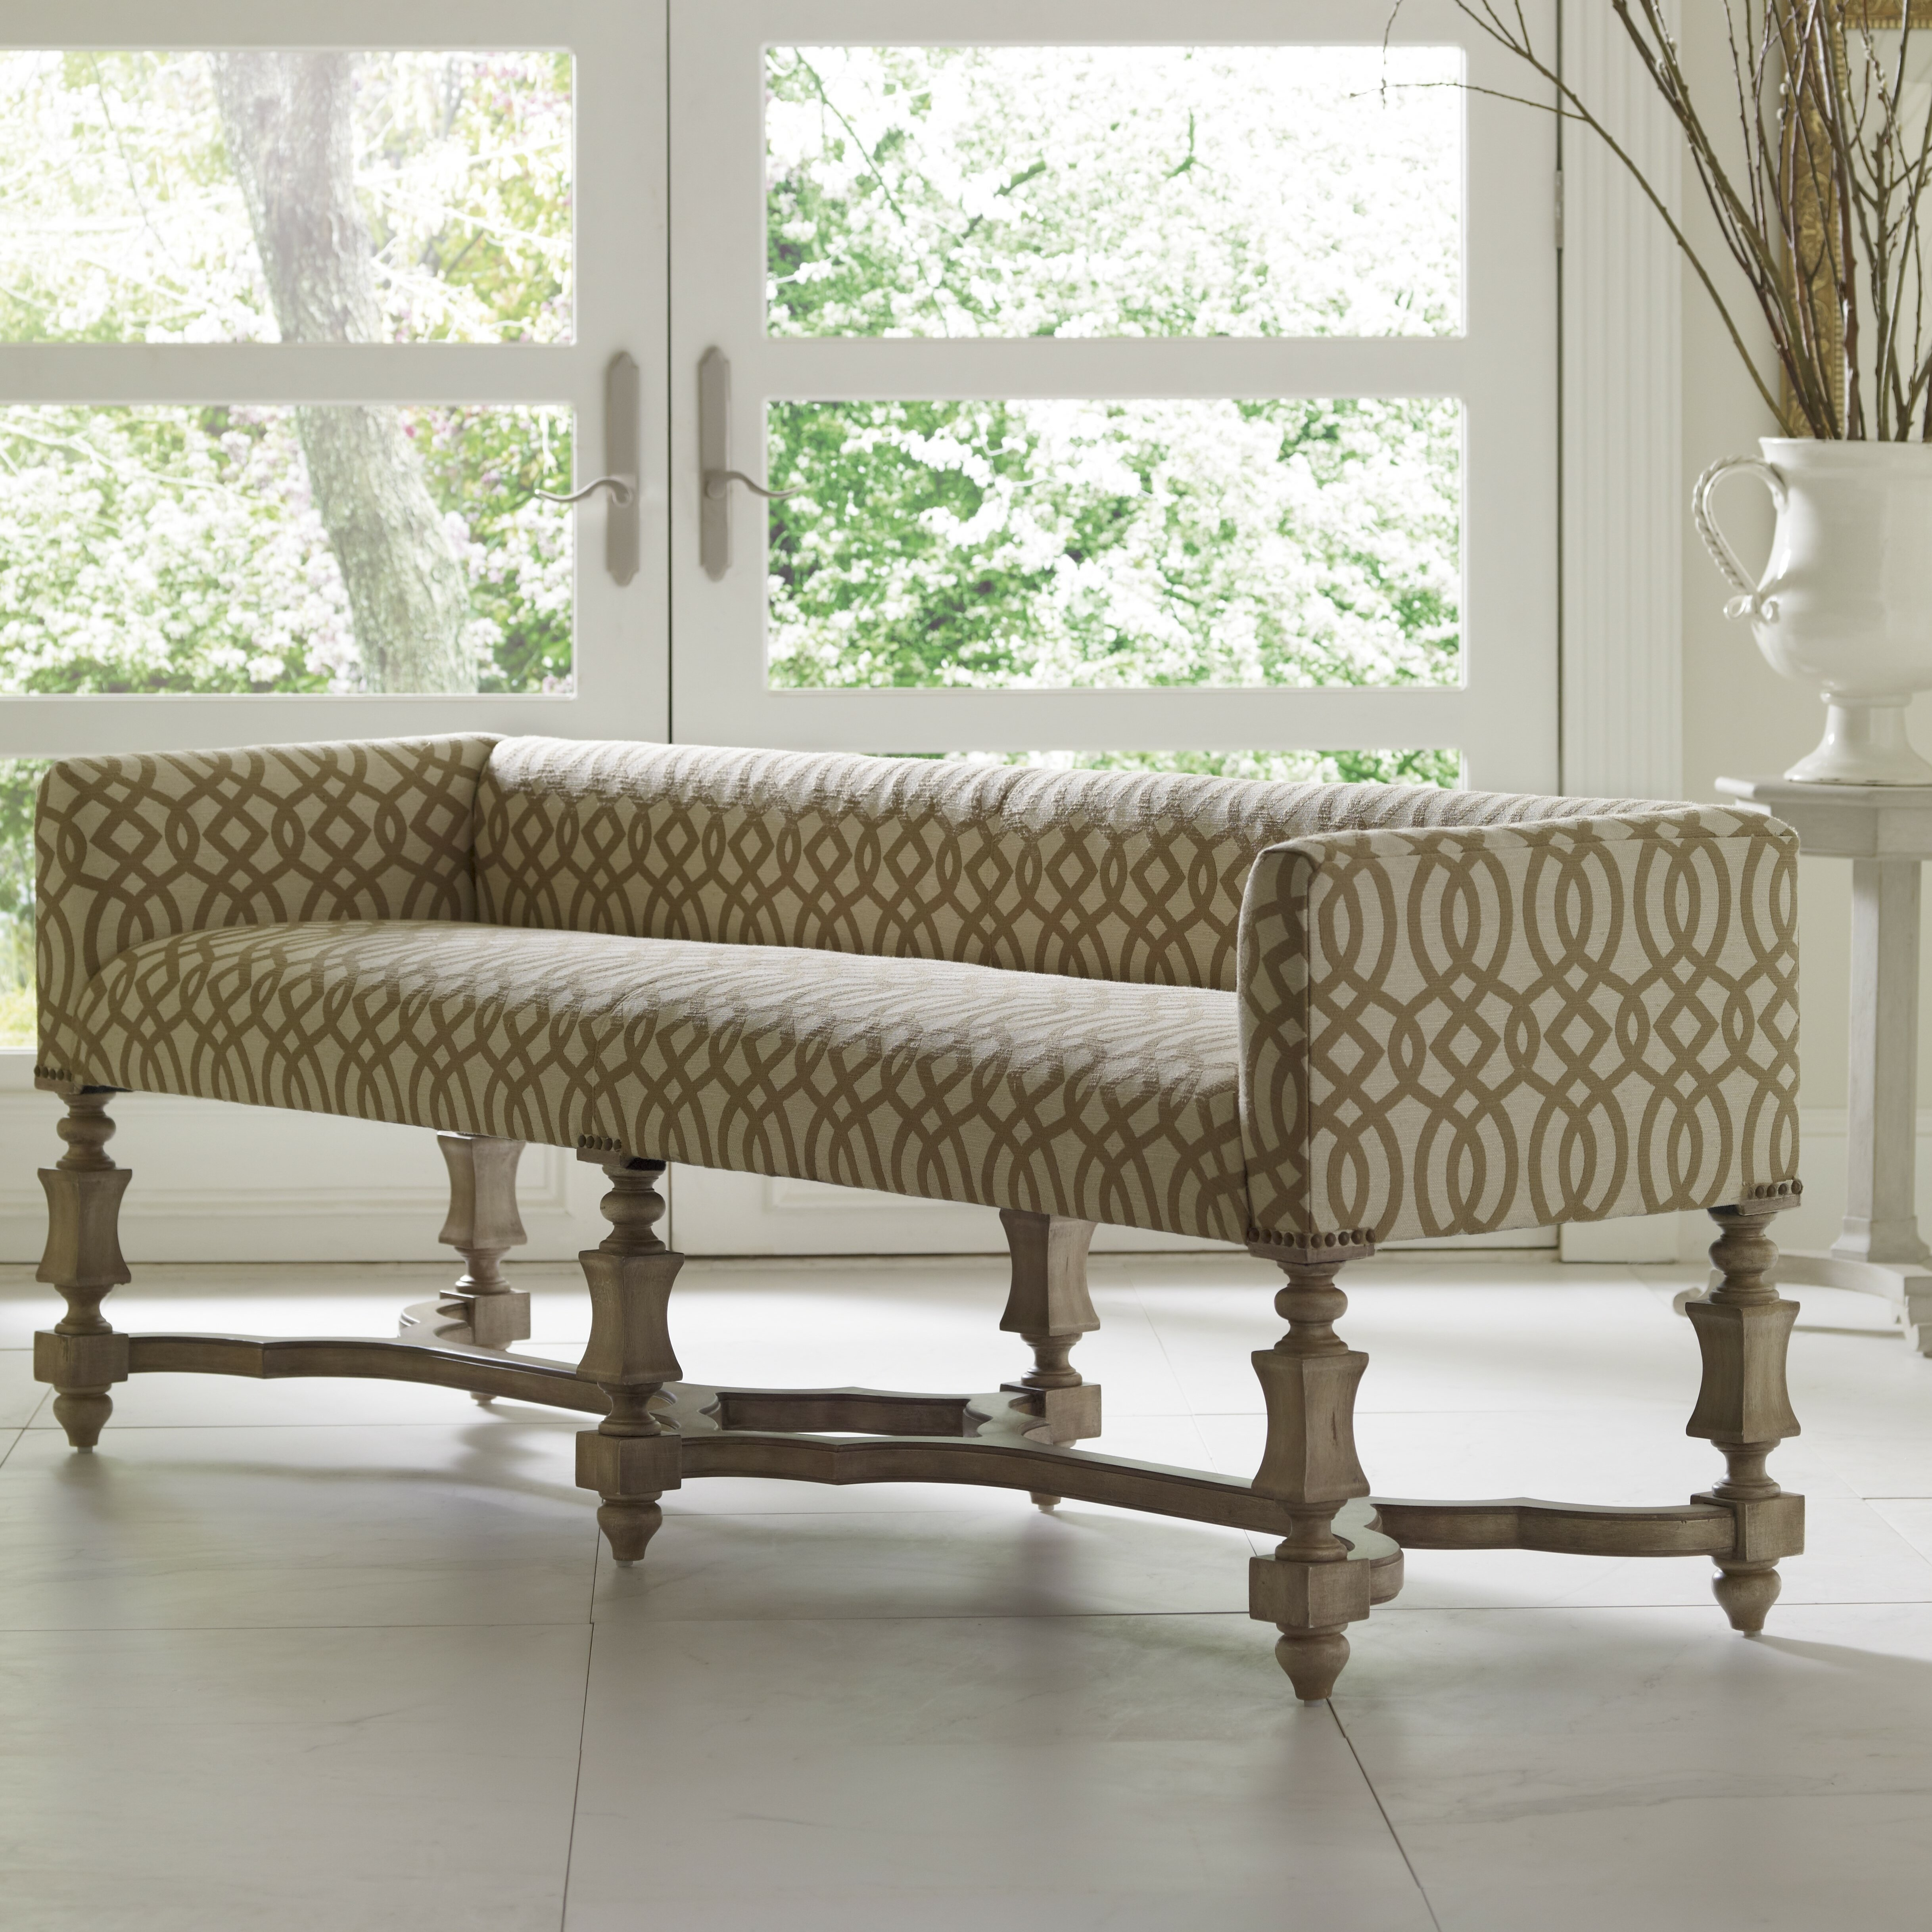 Foyer Leather Bench : Charlemagne leather entryway bench joss main